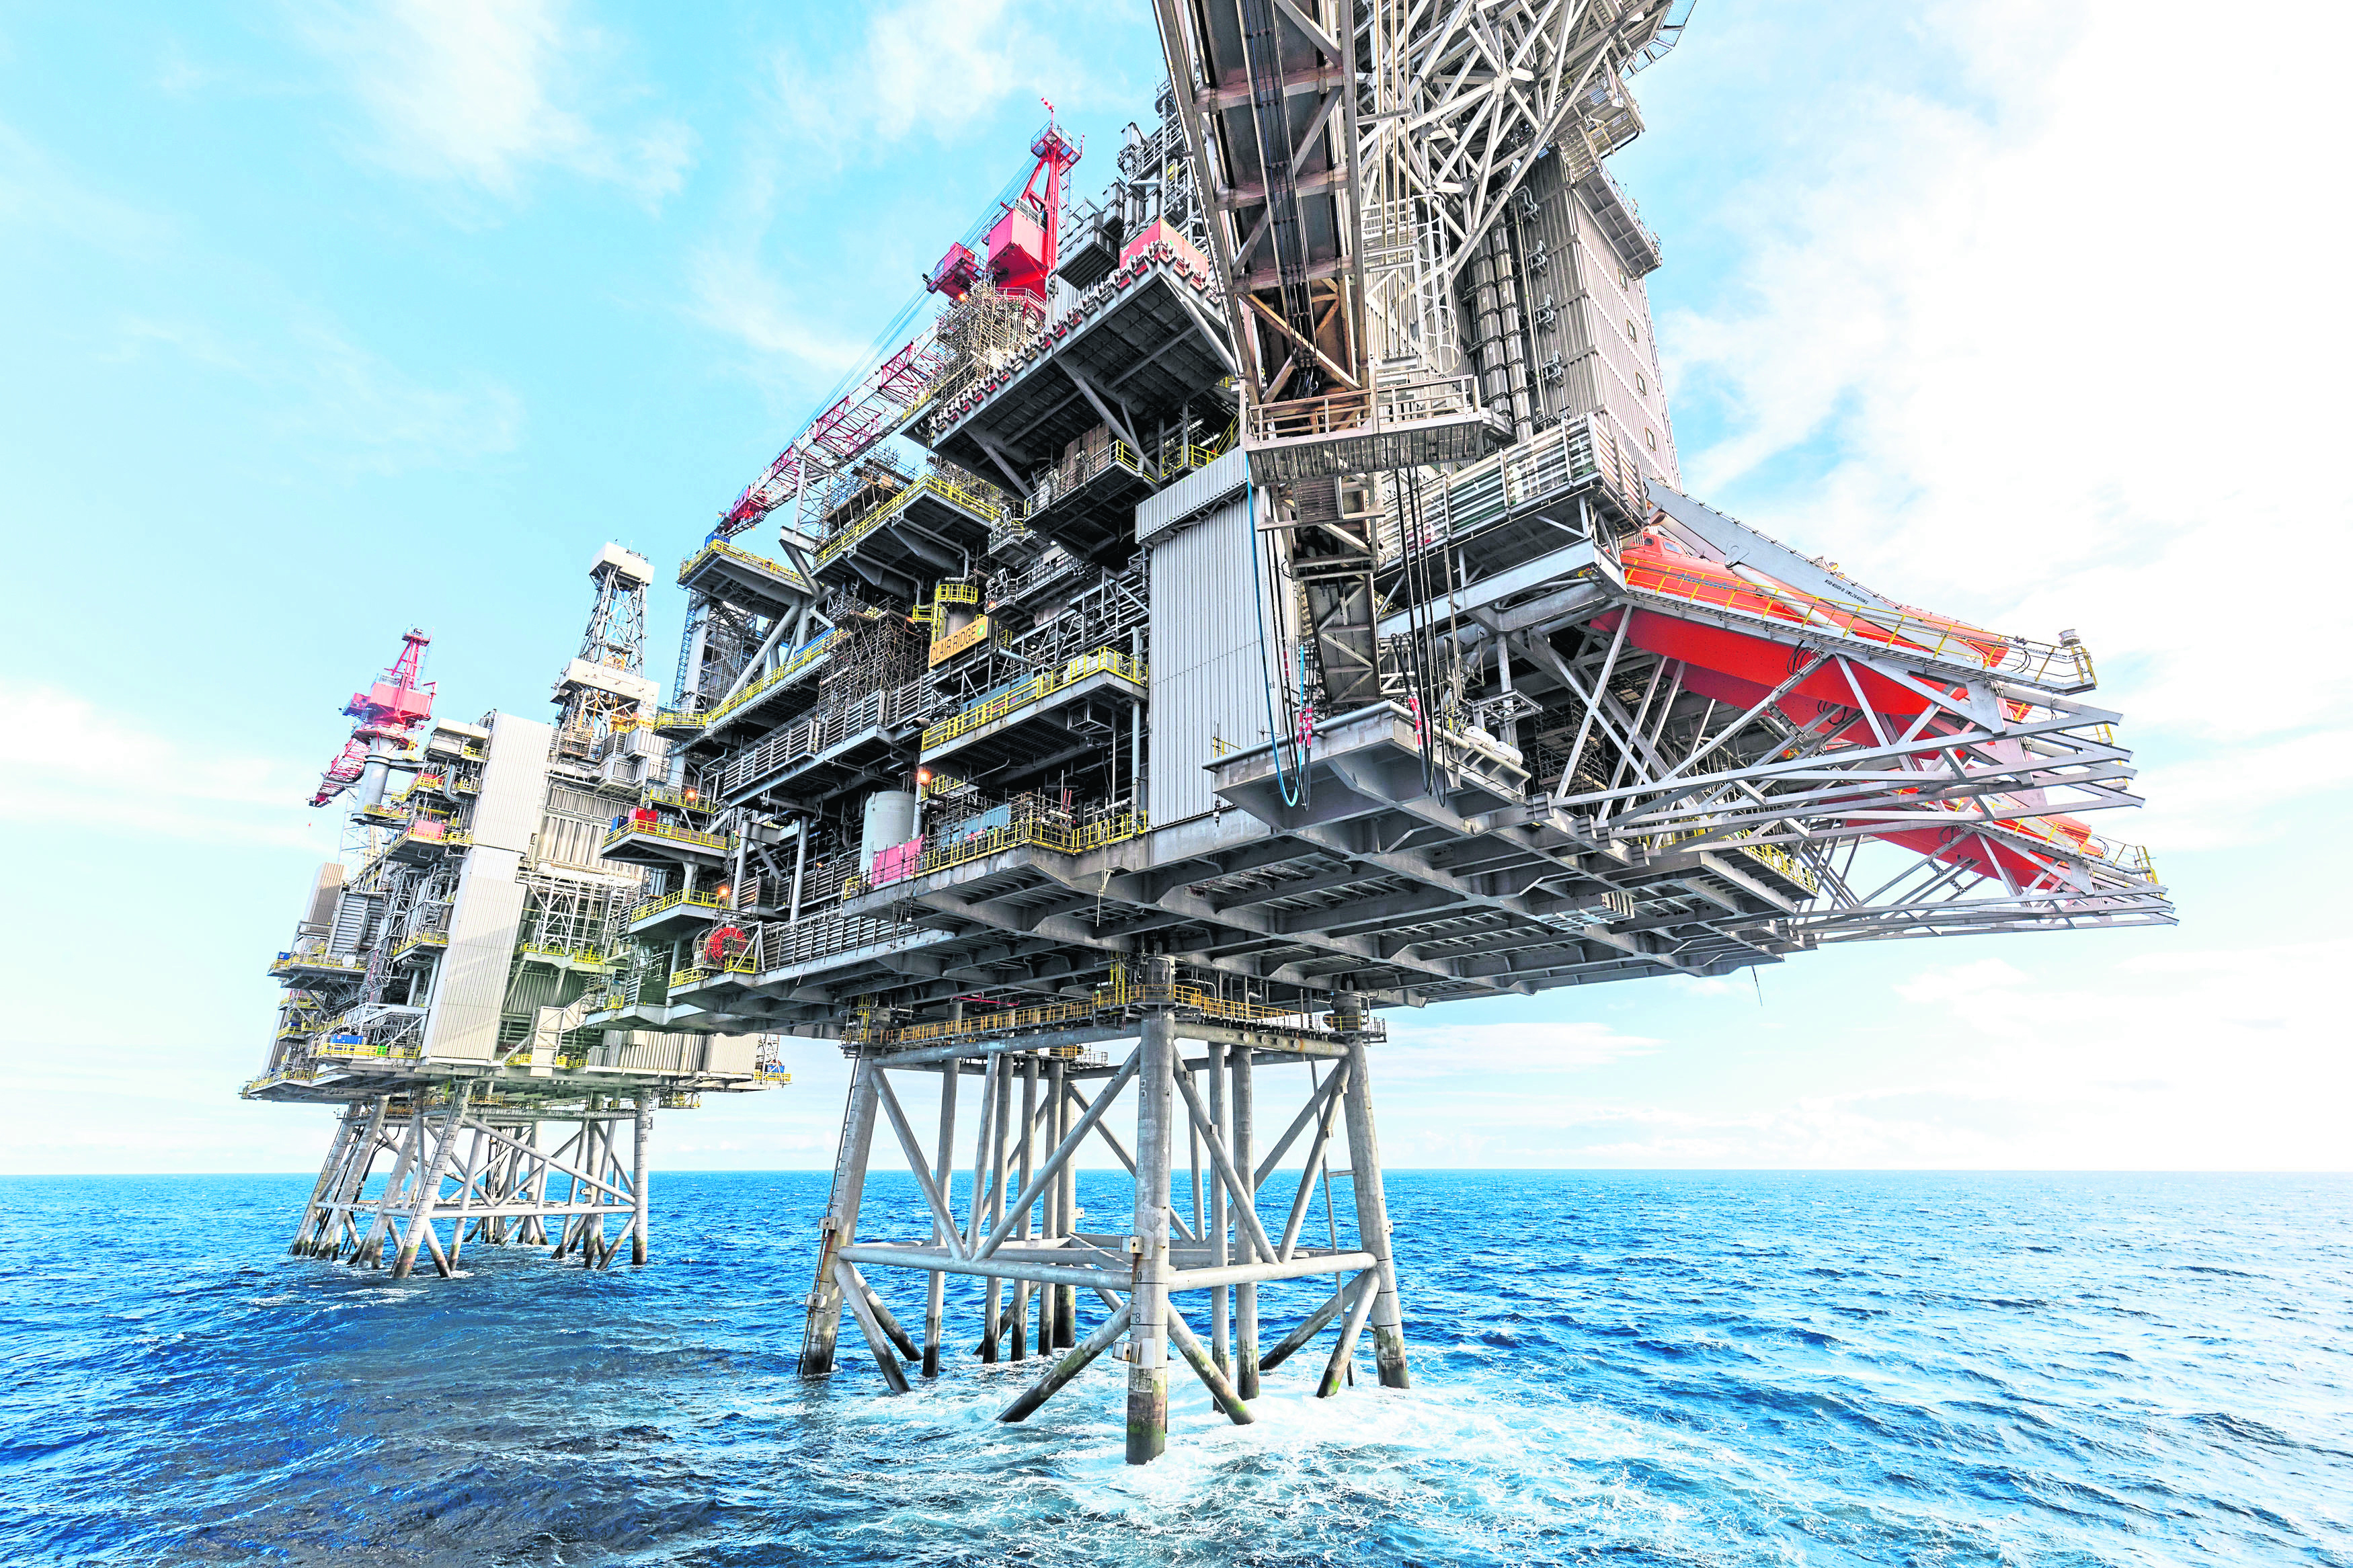 Undated handout photo issued by BP, of the energy giant's Clair Ridge development, west of Shetland, which has started producing oil using technology designed to maximise oil production offshore for the first time. PRESS ASSOCIATION Photo. Issue date: Friday November 23, 2018. The firm hopes to be able to get 640 million barrels of oil from the Clair Ridge, with production expected to peak at 120,00 barrels a day. See PA story INDUSTRY Oil. Photo credit should read: Stuart Conway/PA Wire NOTE TO EDITORS: This handout photo may only be used in for editorial reporting purposes for the contemporaneous illustration of events, things or the people in the image or facts mentioned in the caption. Reuse of the picture may require further permission from the copyright holder.